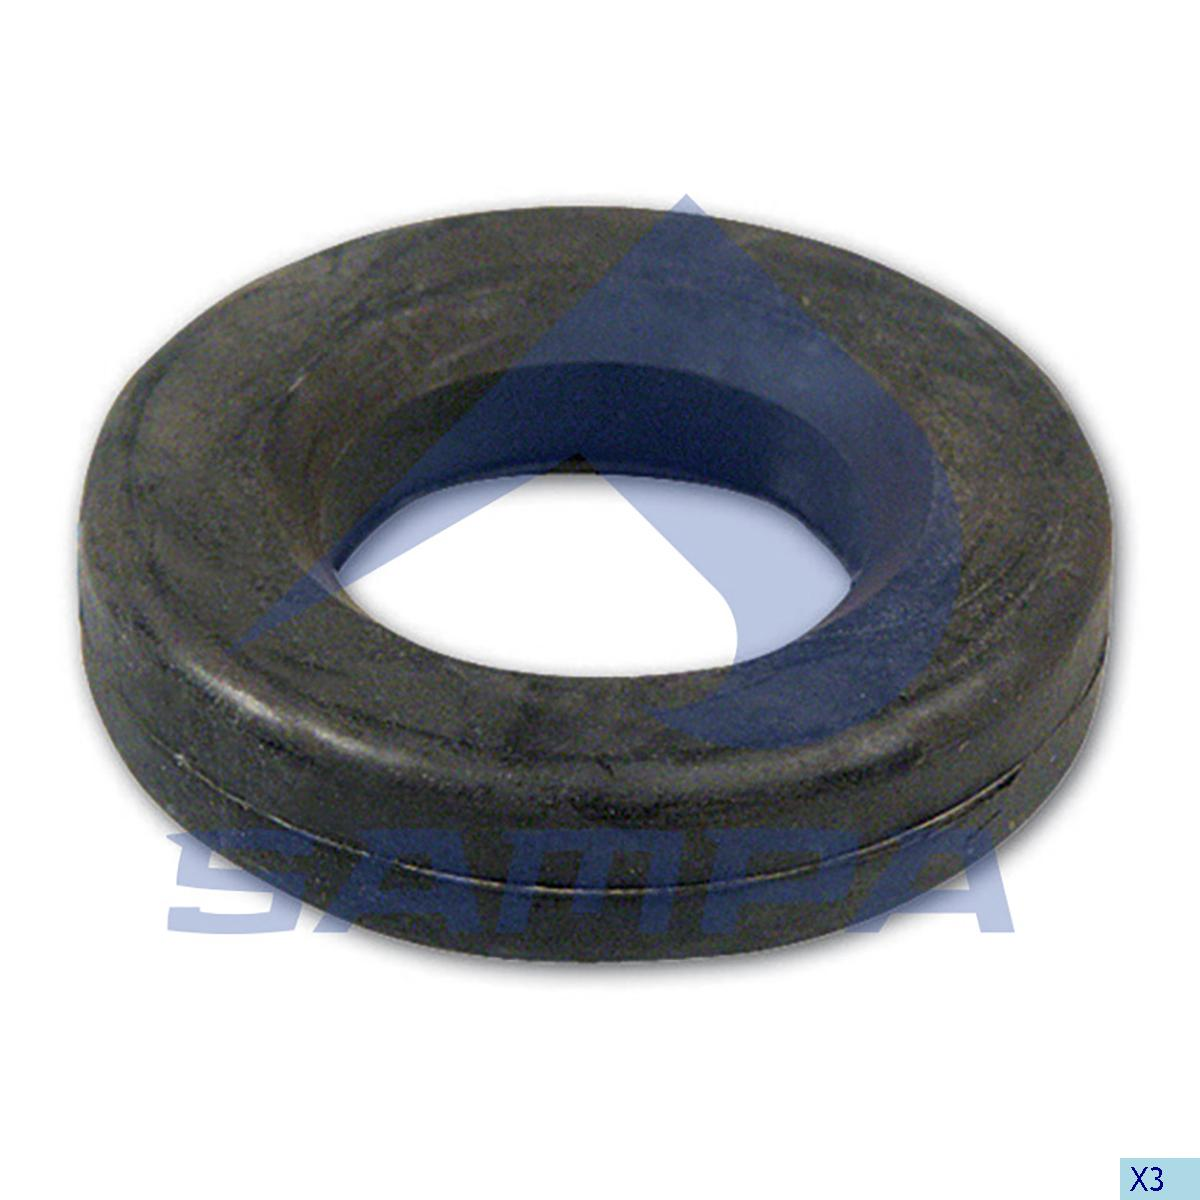 Rubber Bushing, Trailer Coupling, Ringfeder, Complementary Equipment